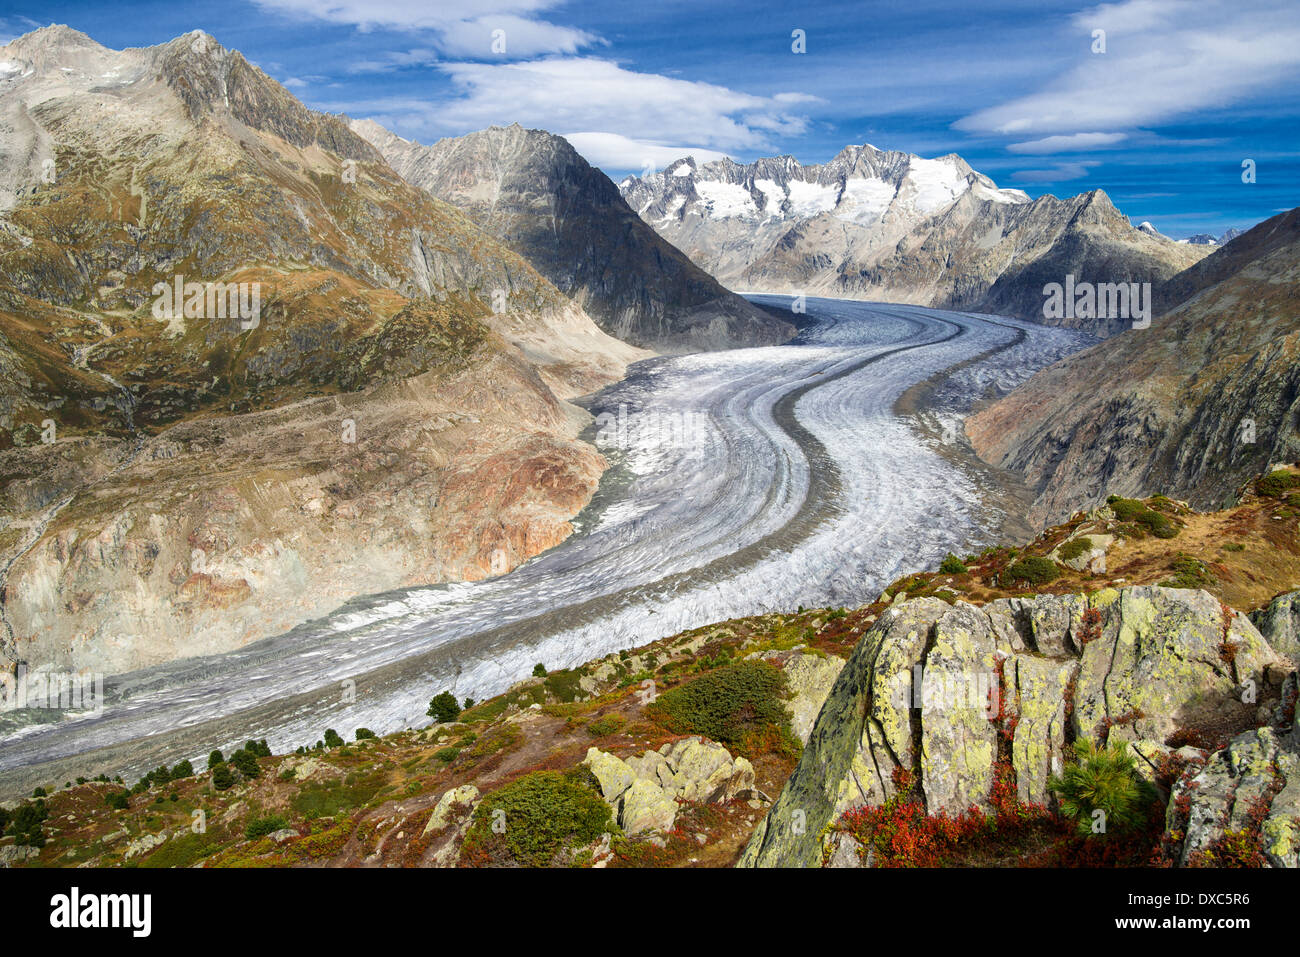 Great Aletsch Glacier, Valais, Swiss Alps, Switzerland, Europe - Stock Image